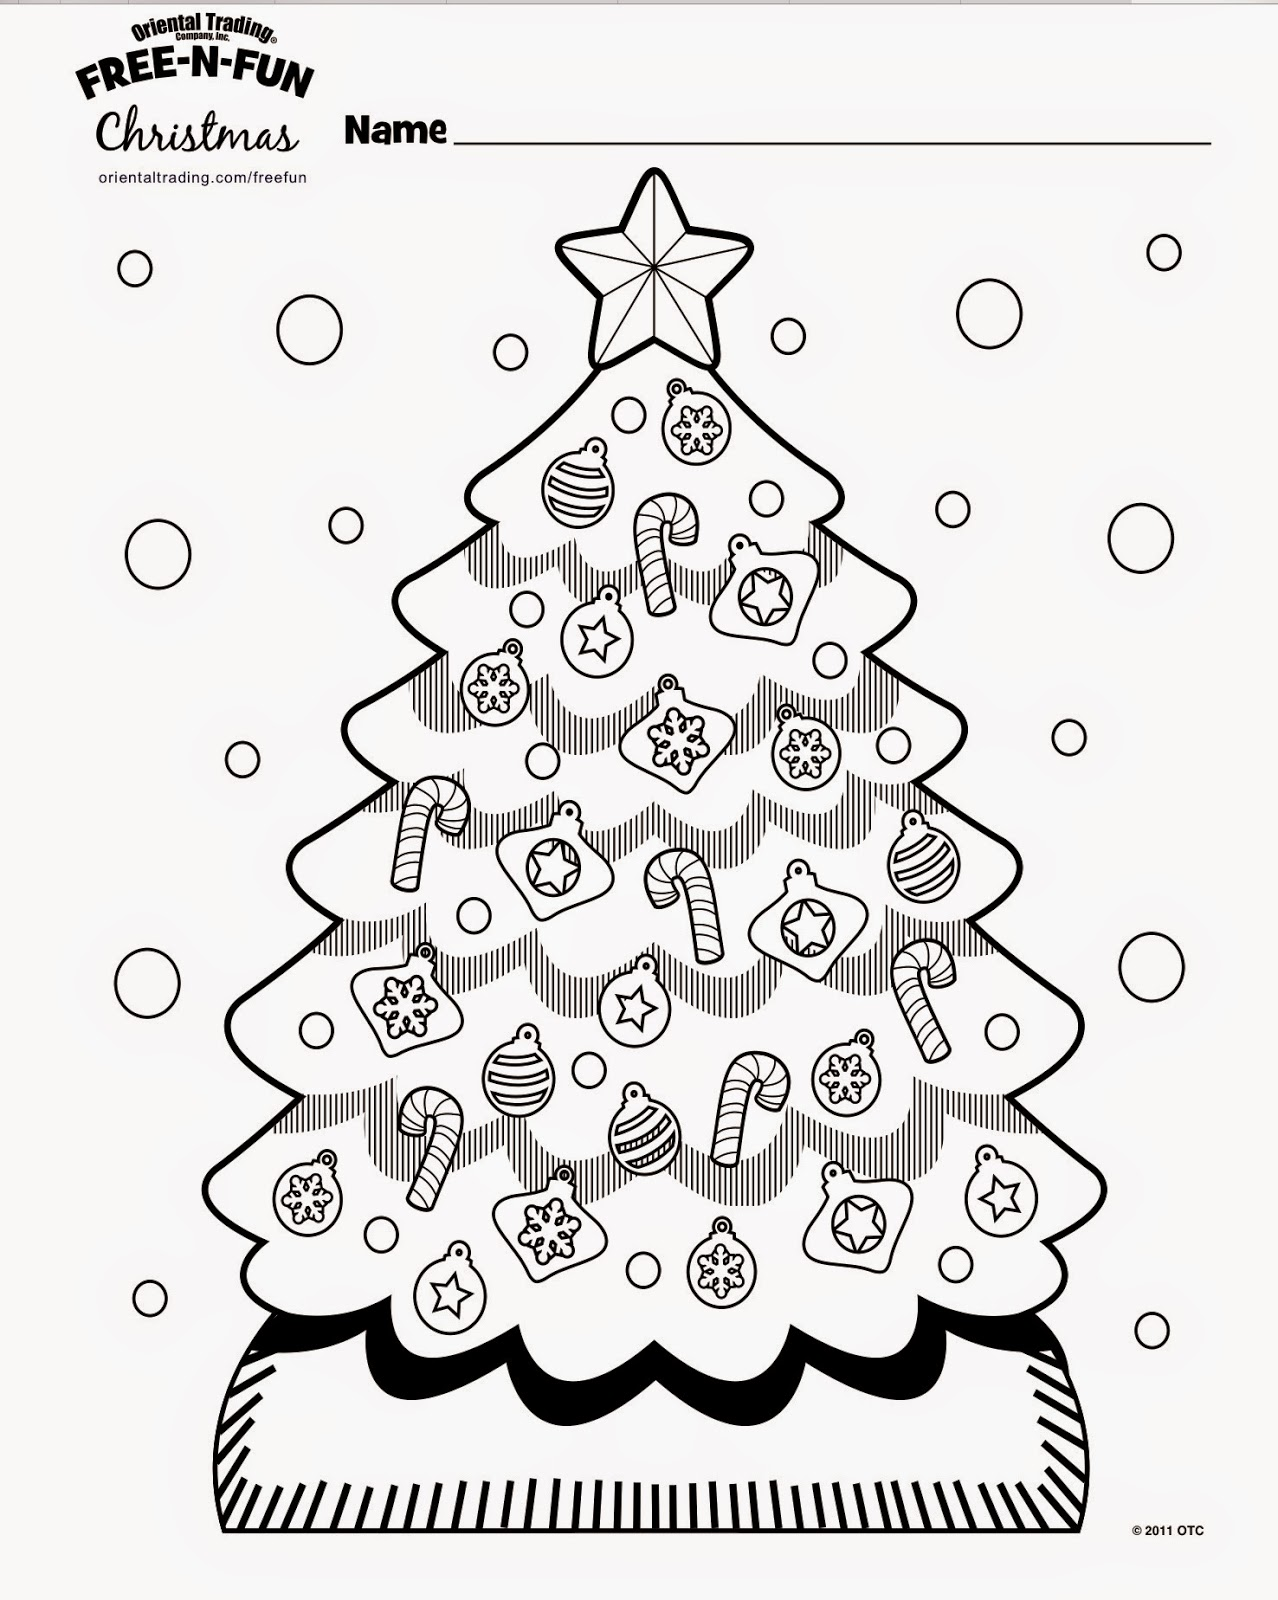 Coloring Sheets From FREE N FUN Christmas